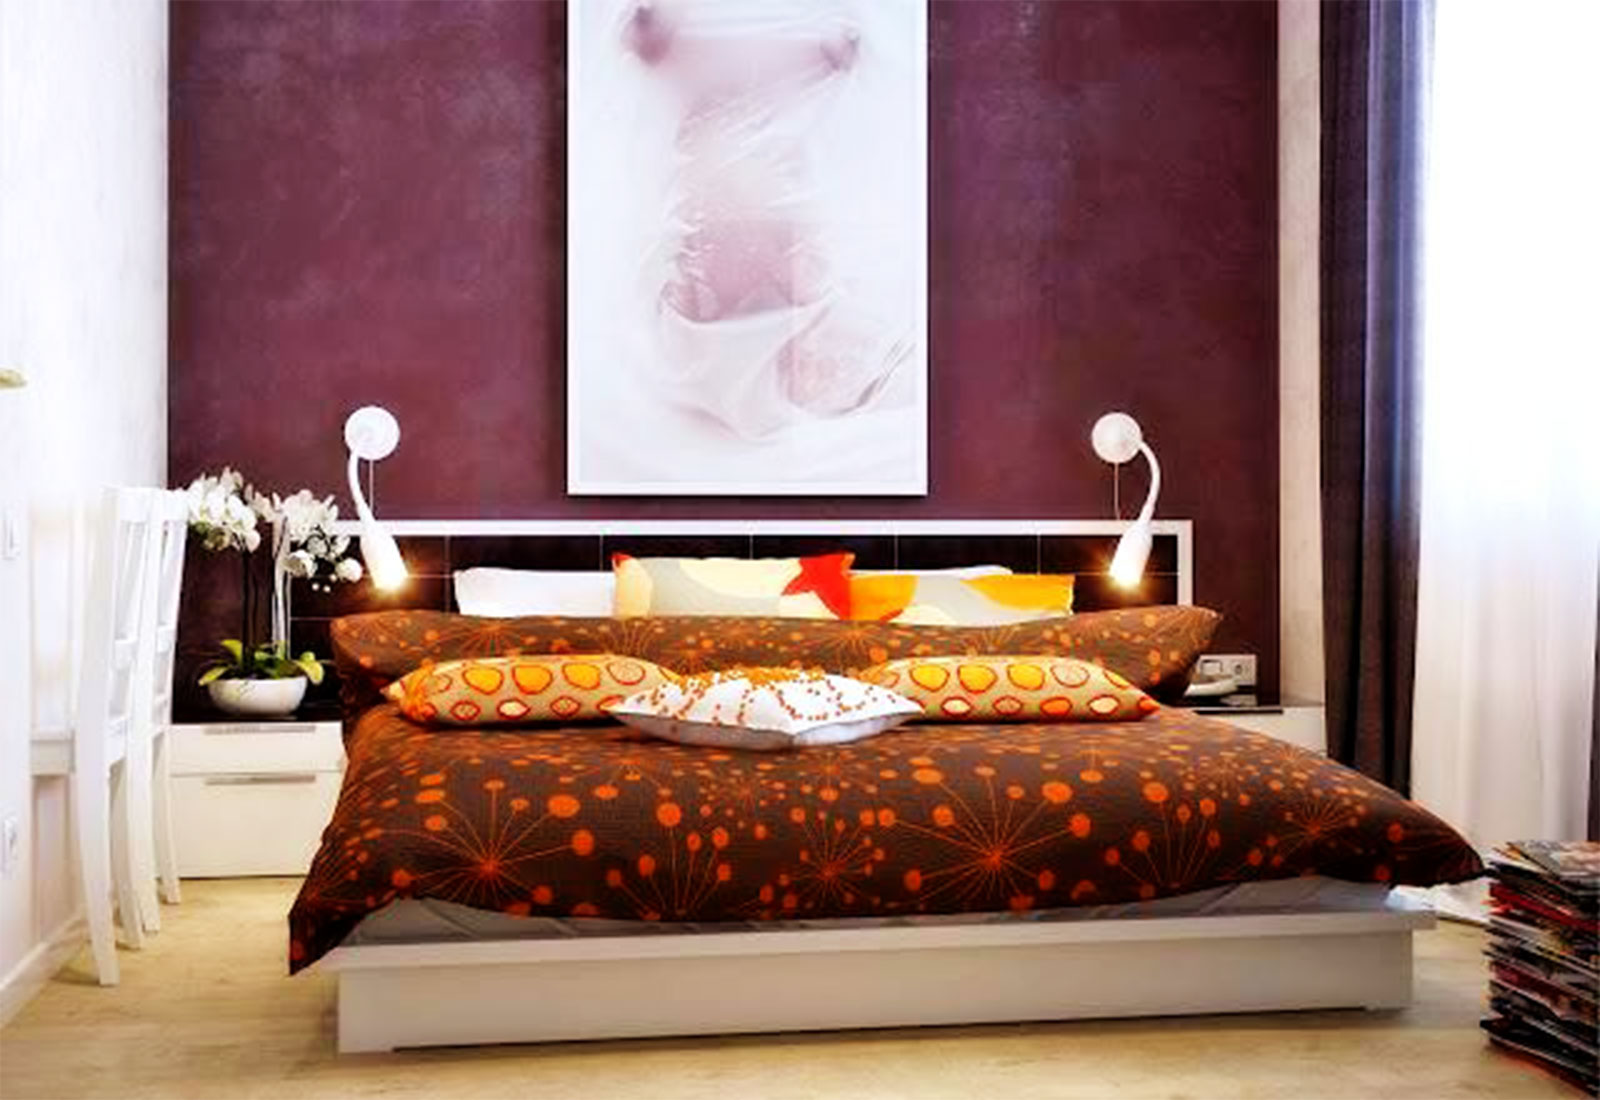 Accent Wall Bedroom Decor - Elegant Furniture Ideas